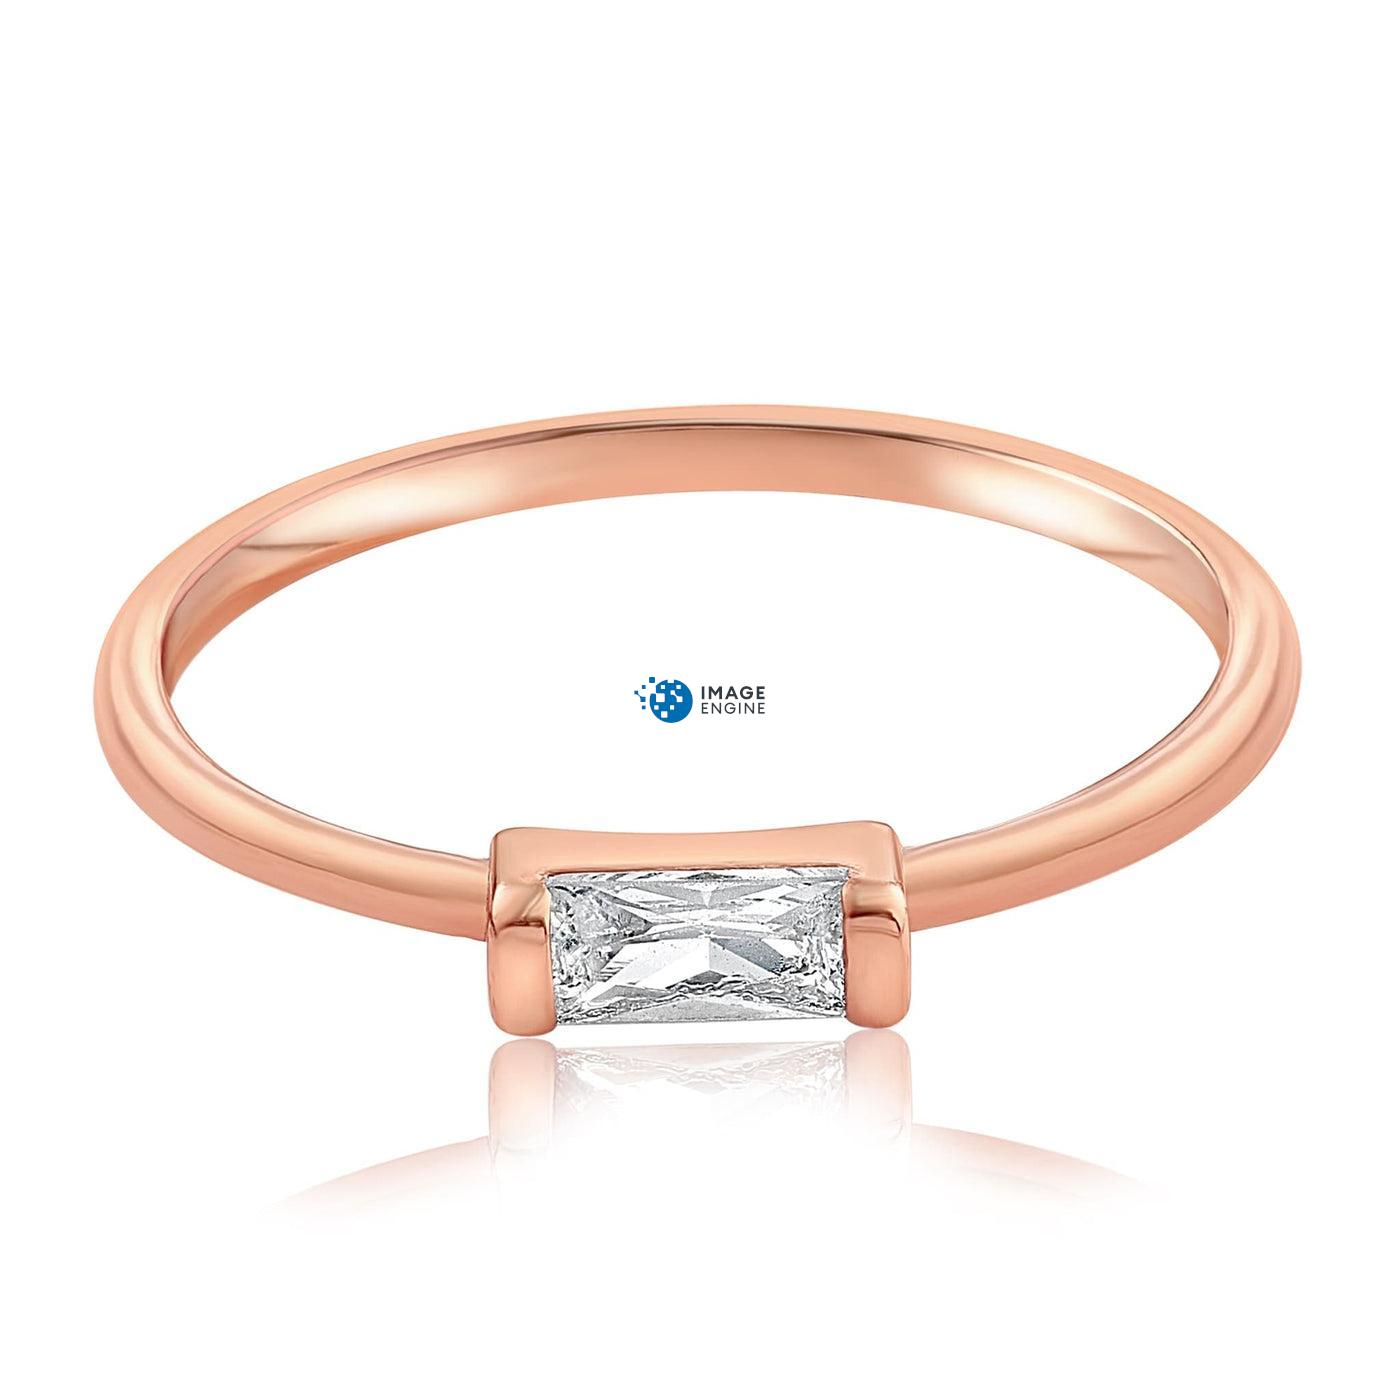 Moonie Glass Geometric Ring - Side View - 18K Rose Gold Vermeil